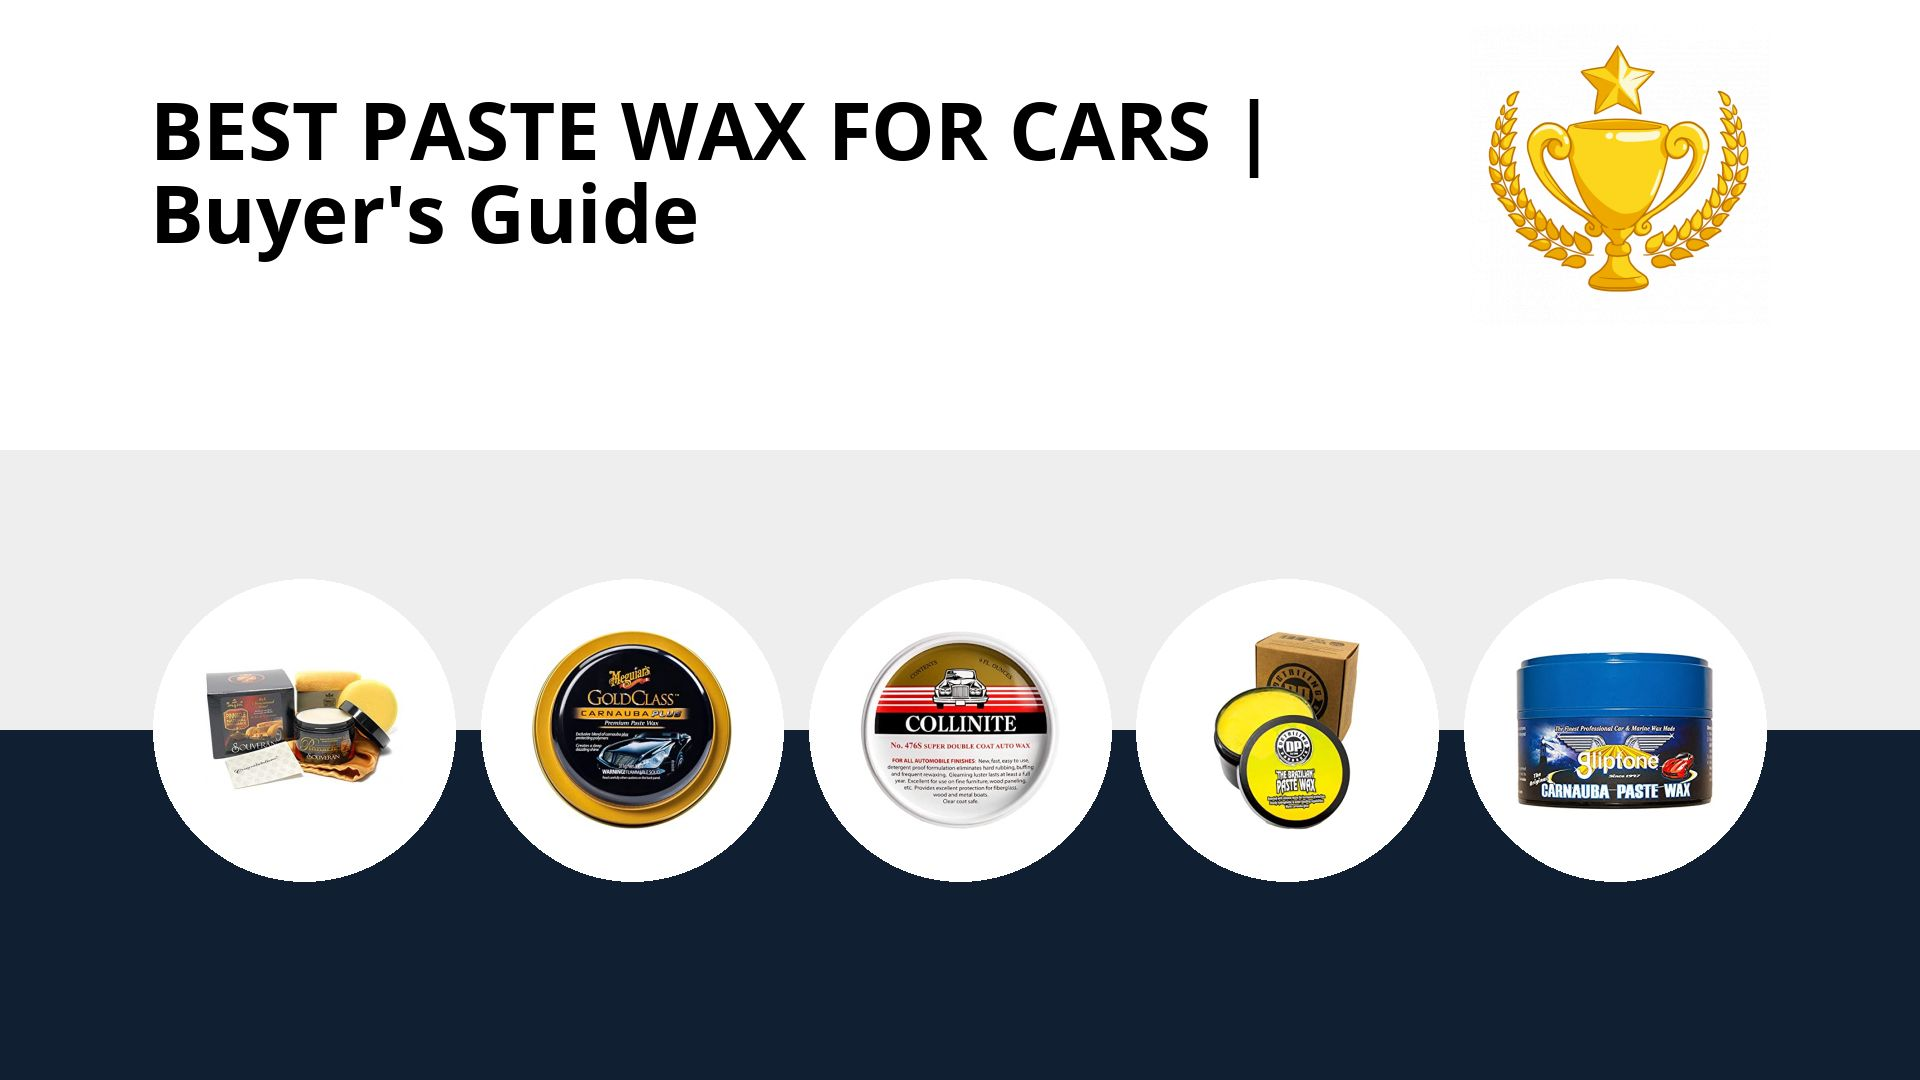 Best Paste Wax For Cars: image